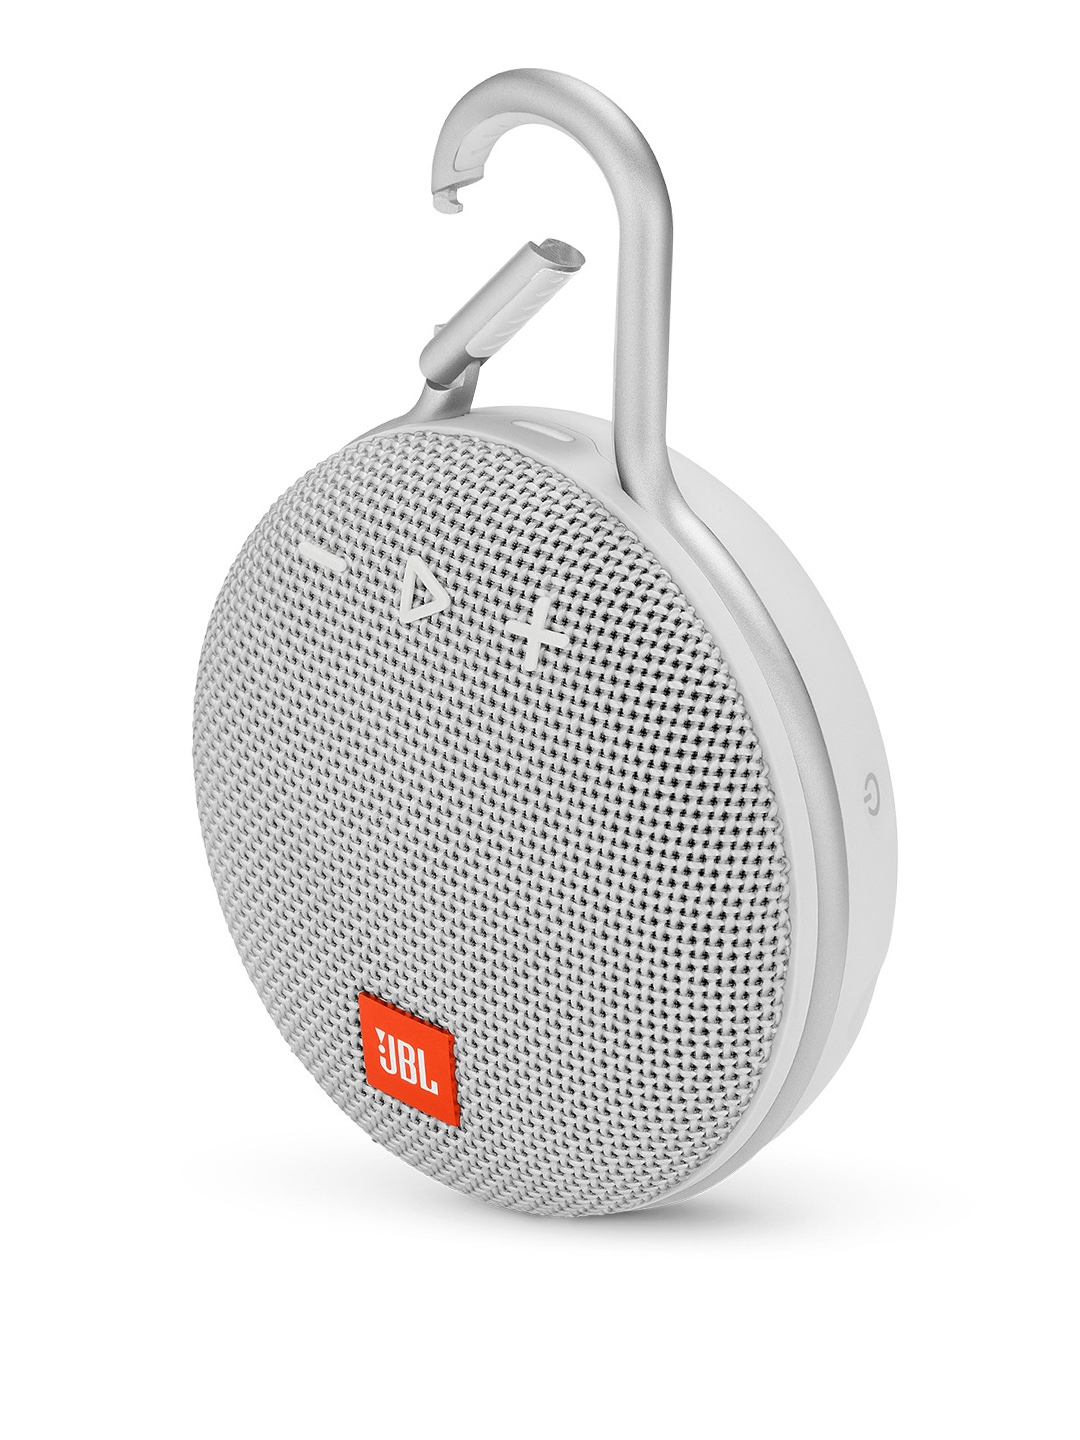 JBL White Clip 3 Ultra Portable Wireless Bluetooth Speaker with Mic JBLCLIP3WHT JBL Speakers